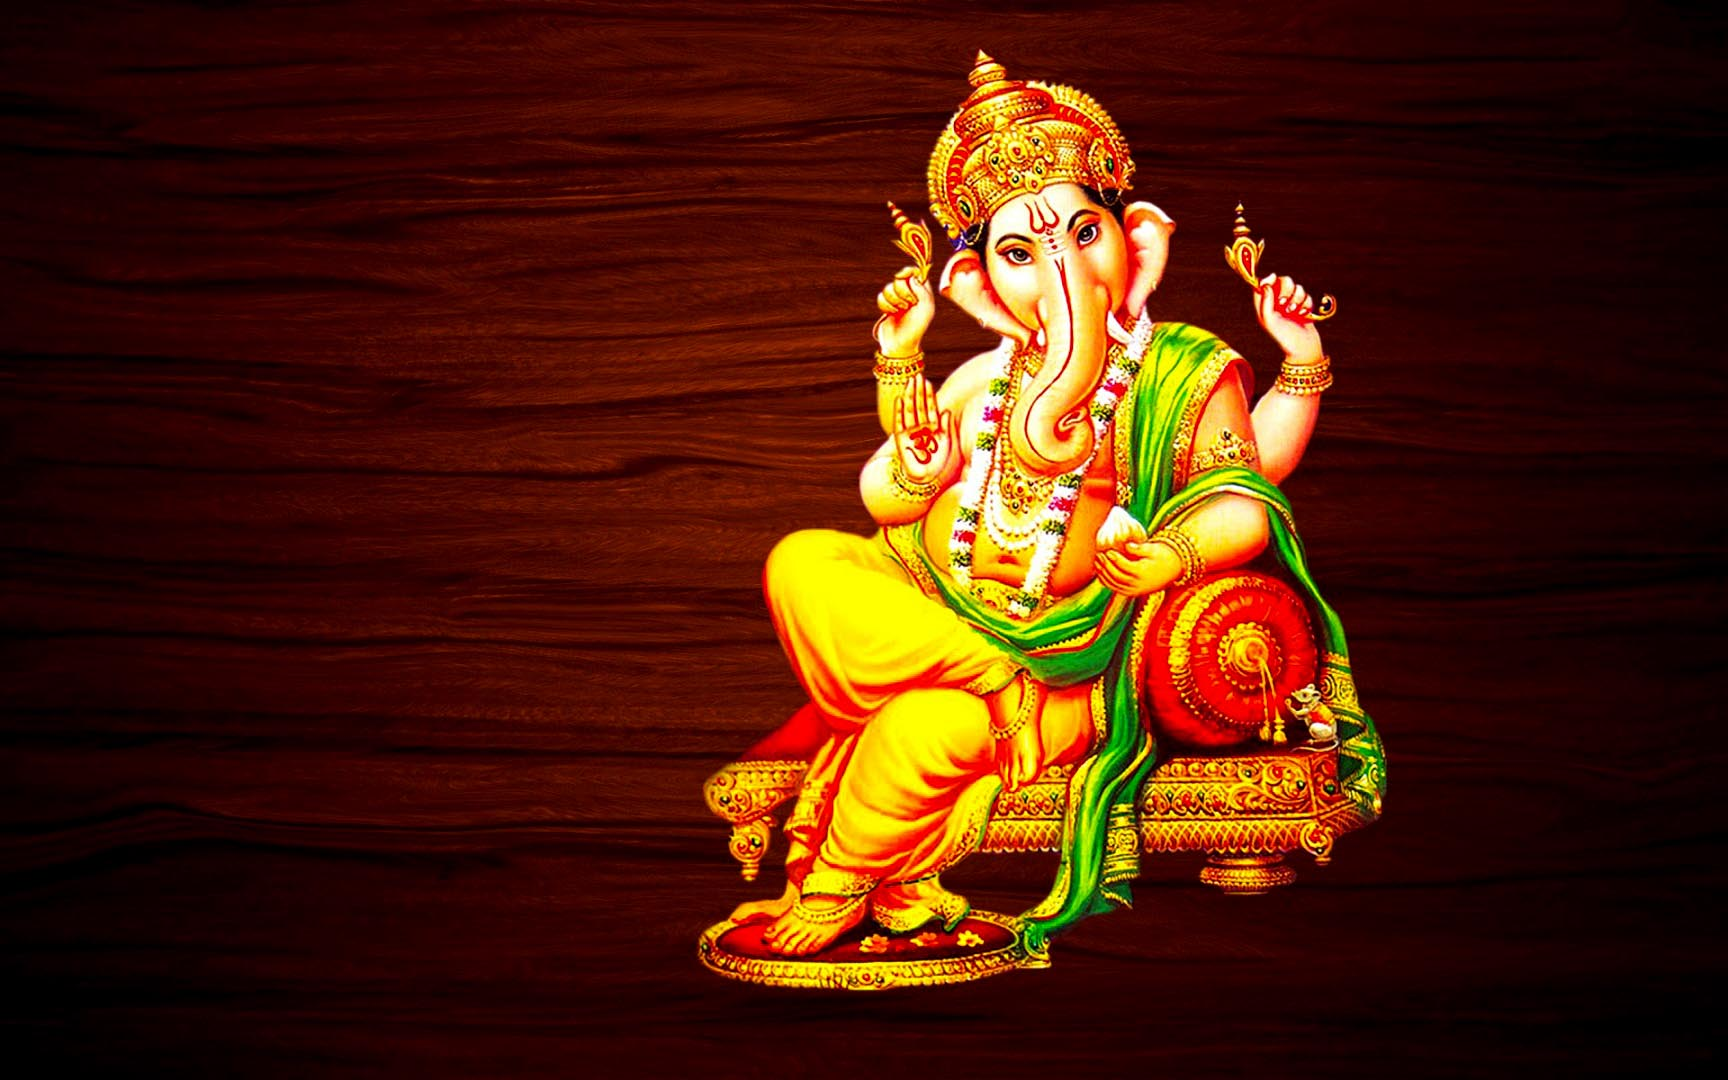 Ganesh Chaturthi Hd Images Wallpapers Photos Free